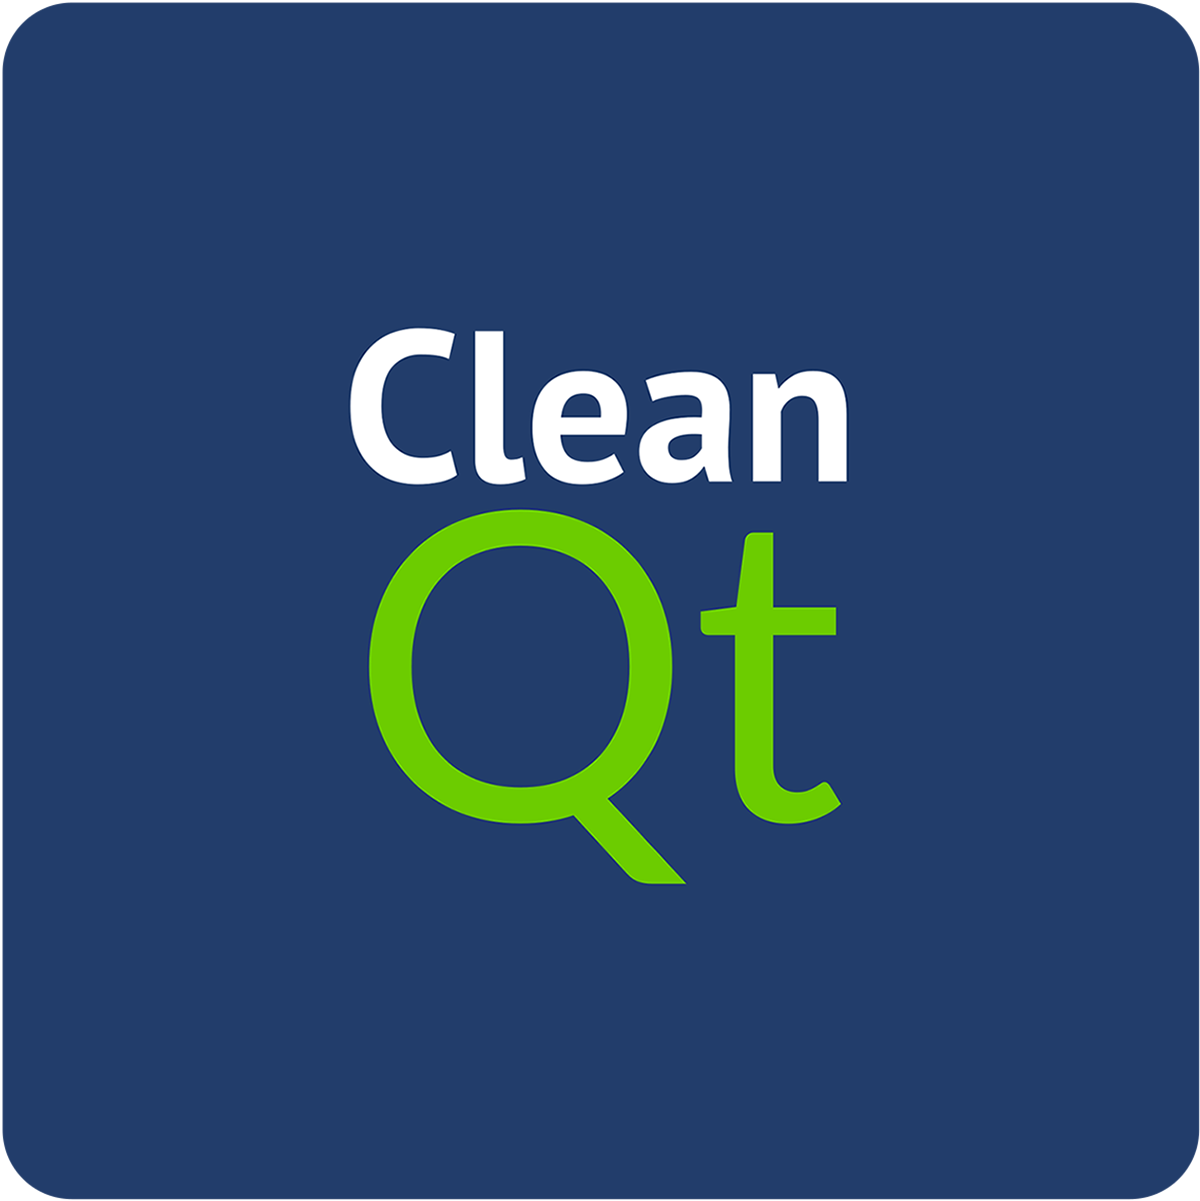 Crash course in Qt for C++ developers, Part 6 / Clean Qt